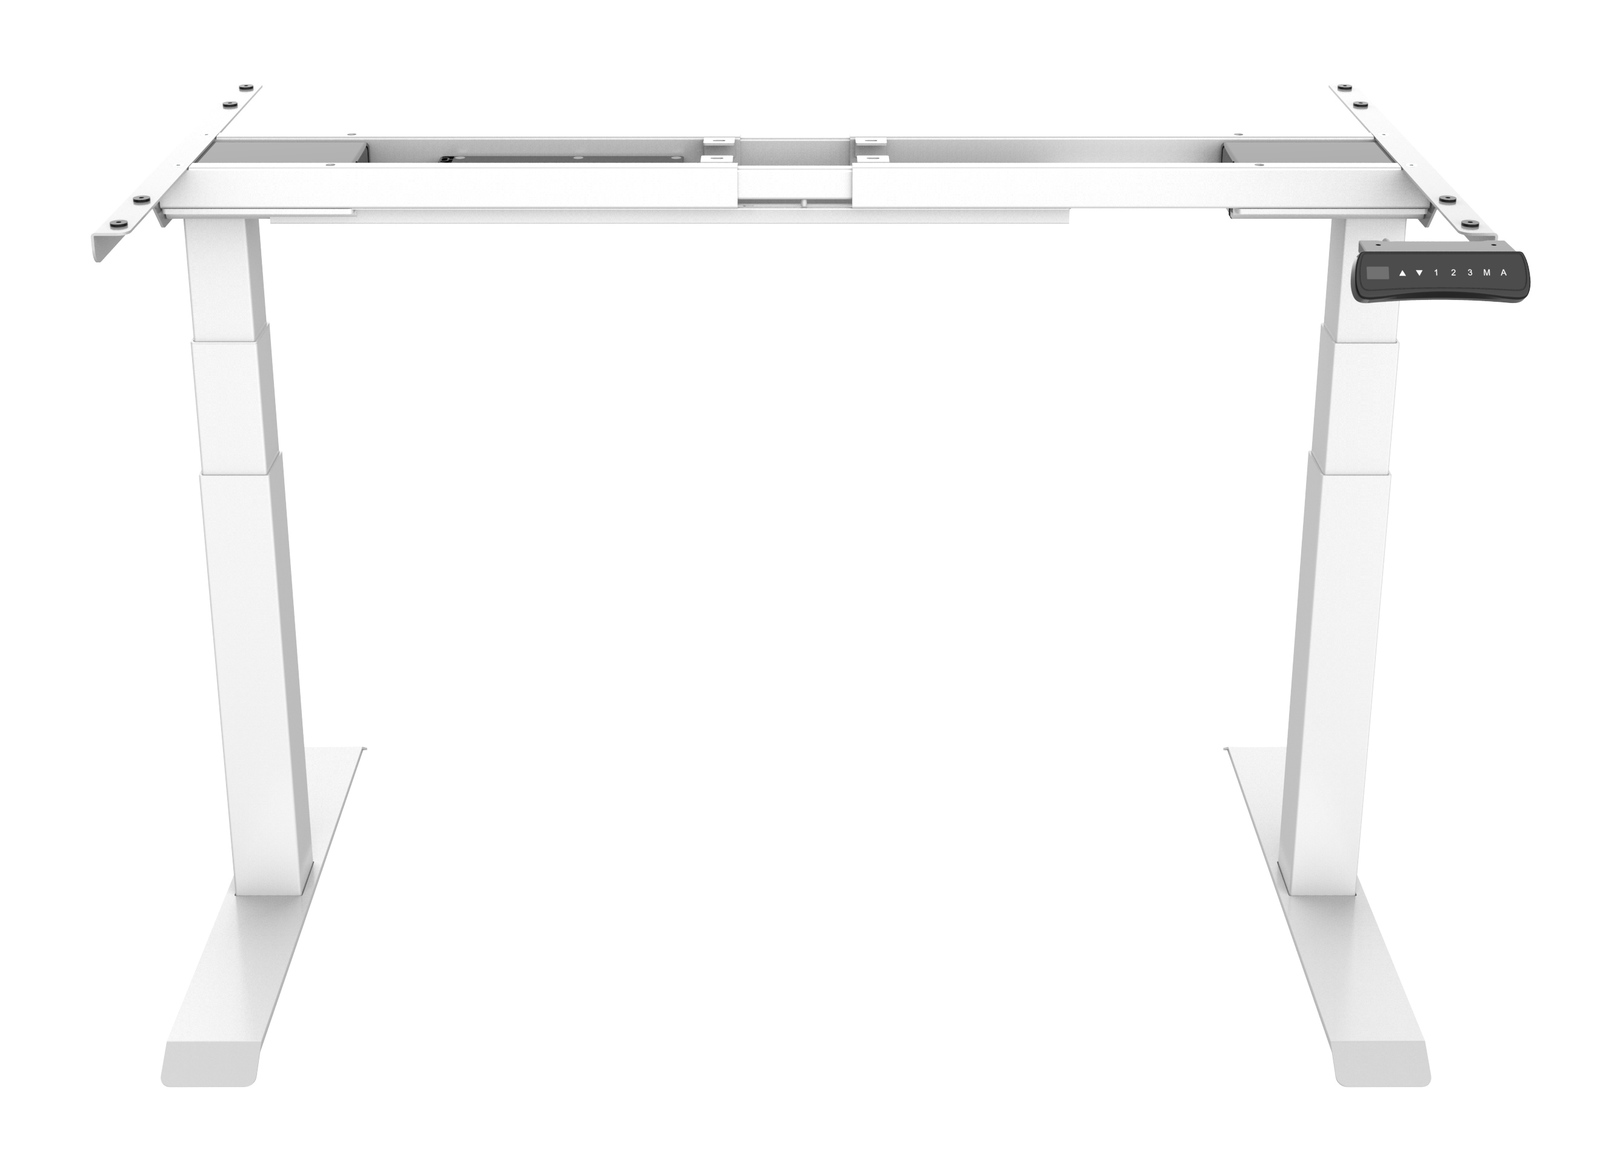 Gorilla Office: 3-Stage Motorised Height Adjustable Desk - White/White (1800 x 800mm) image